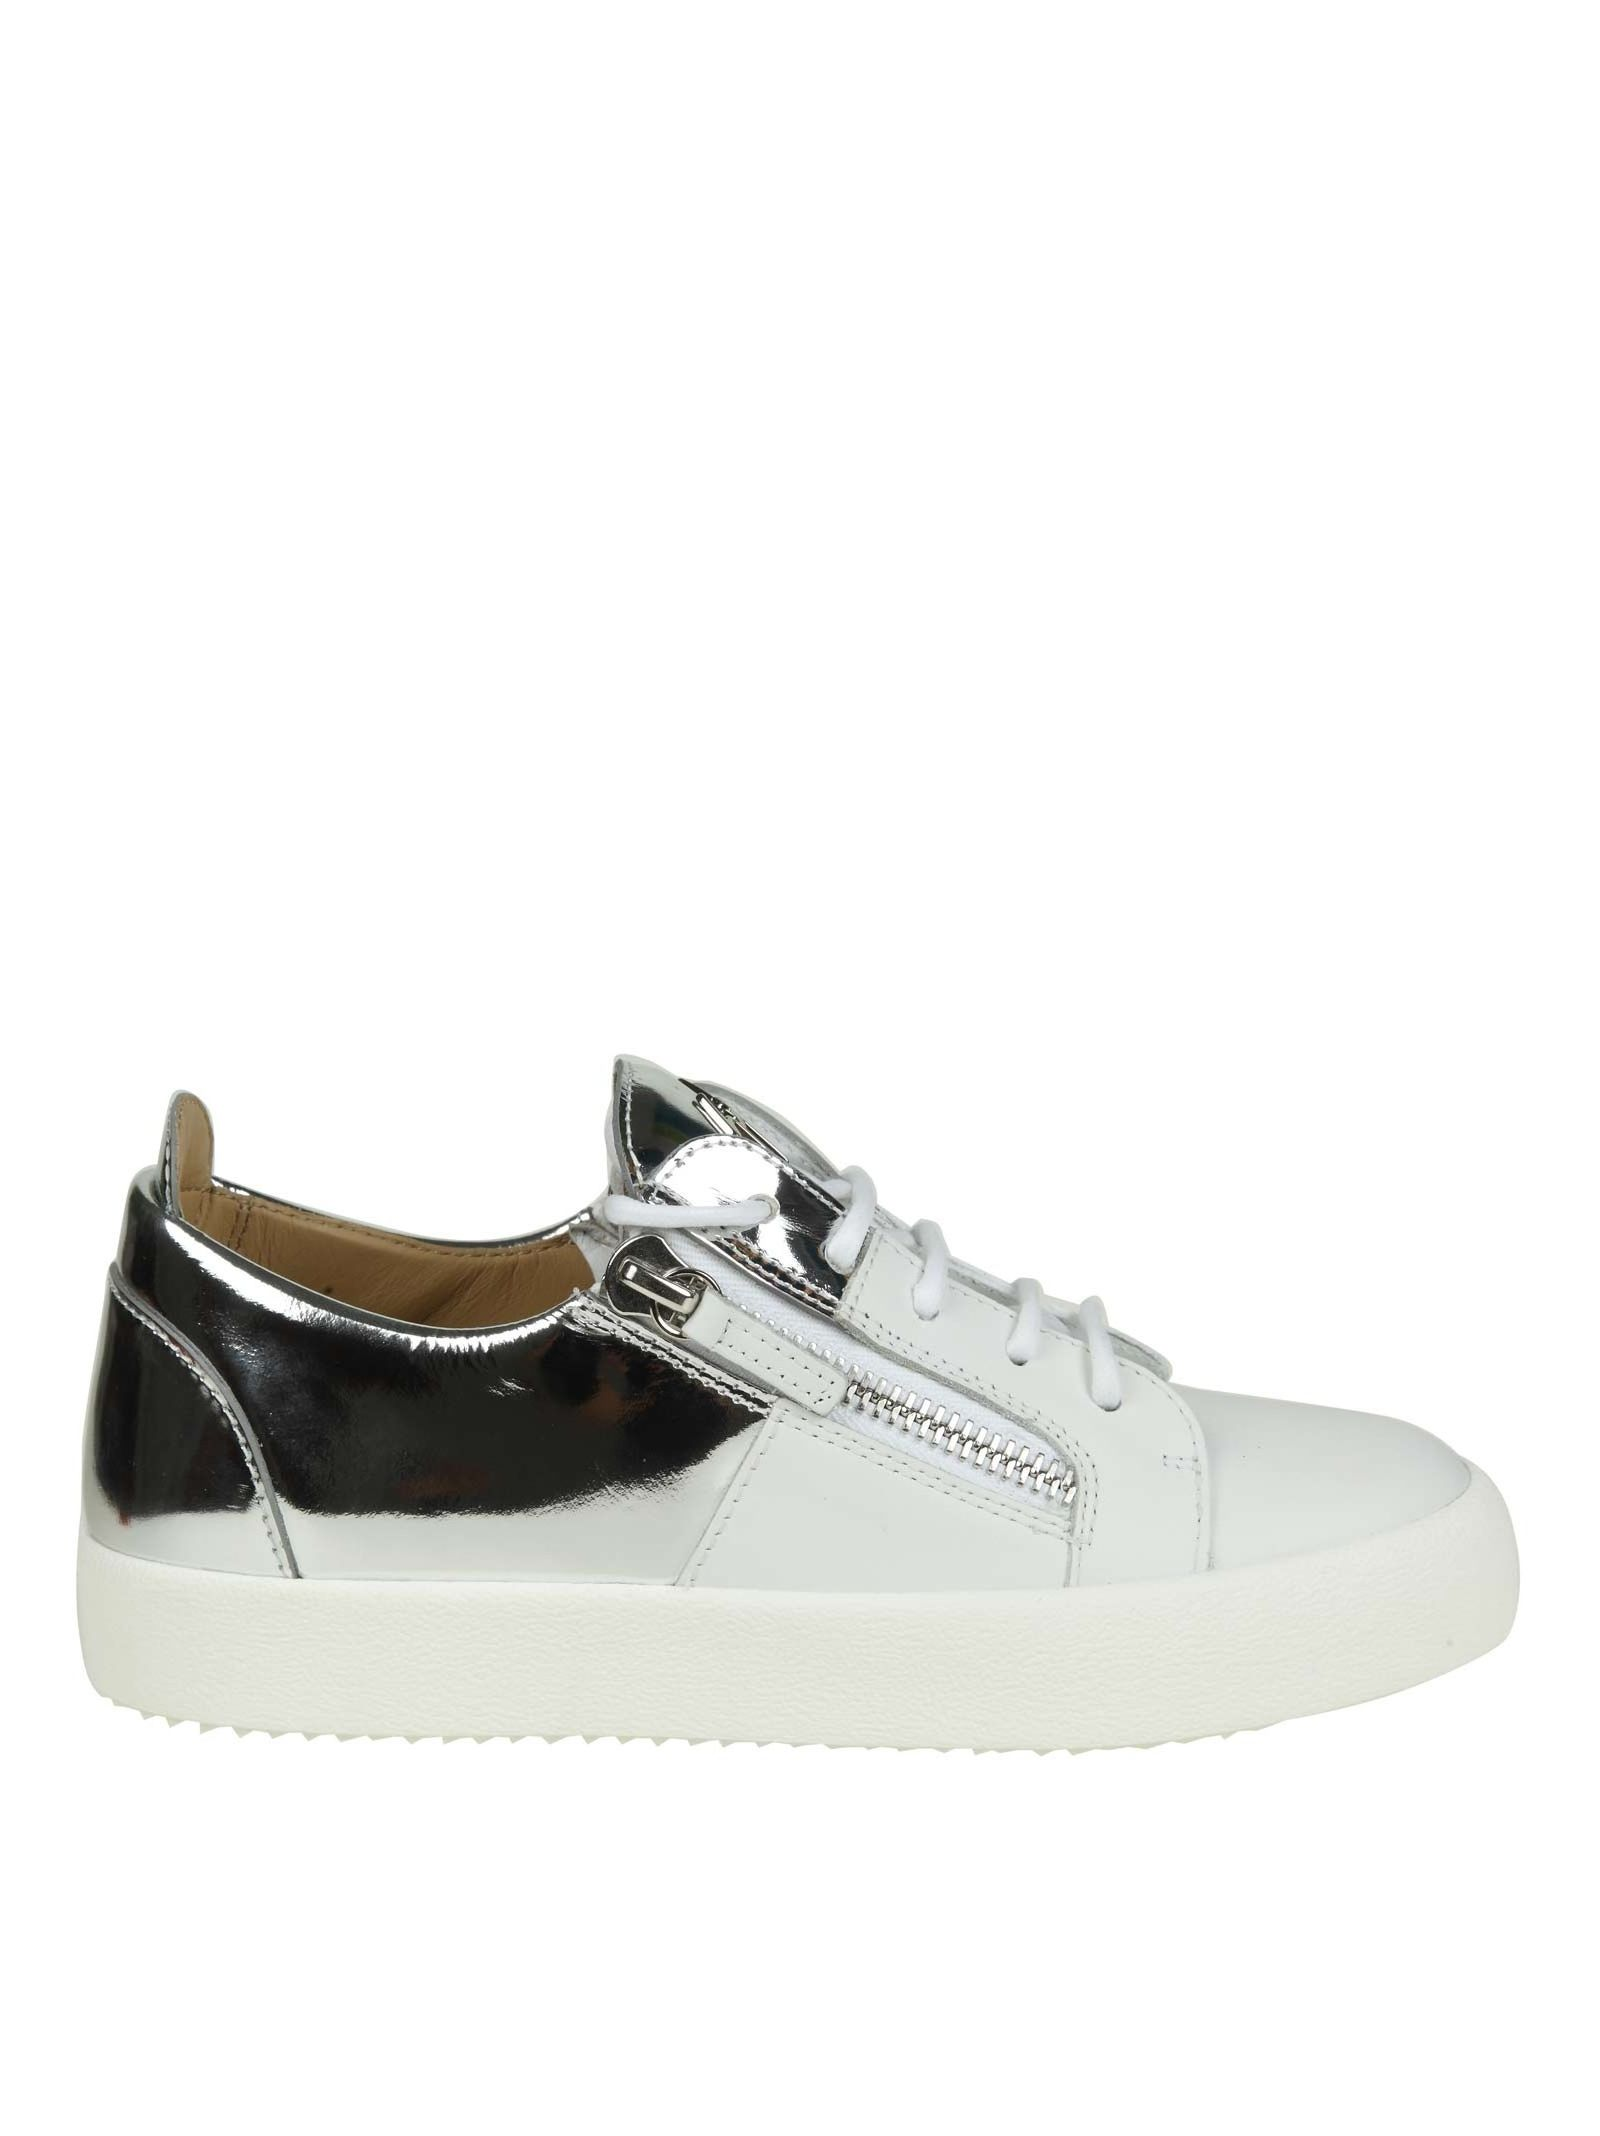 """Giuseppe Zanotti """"MAY"""" SNEAKERS IN WHITE LEATHER WITH SILVER SHINY LEATHER INSERT"""